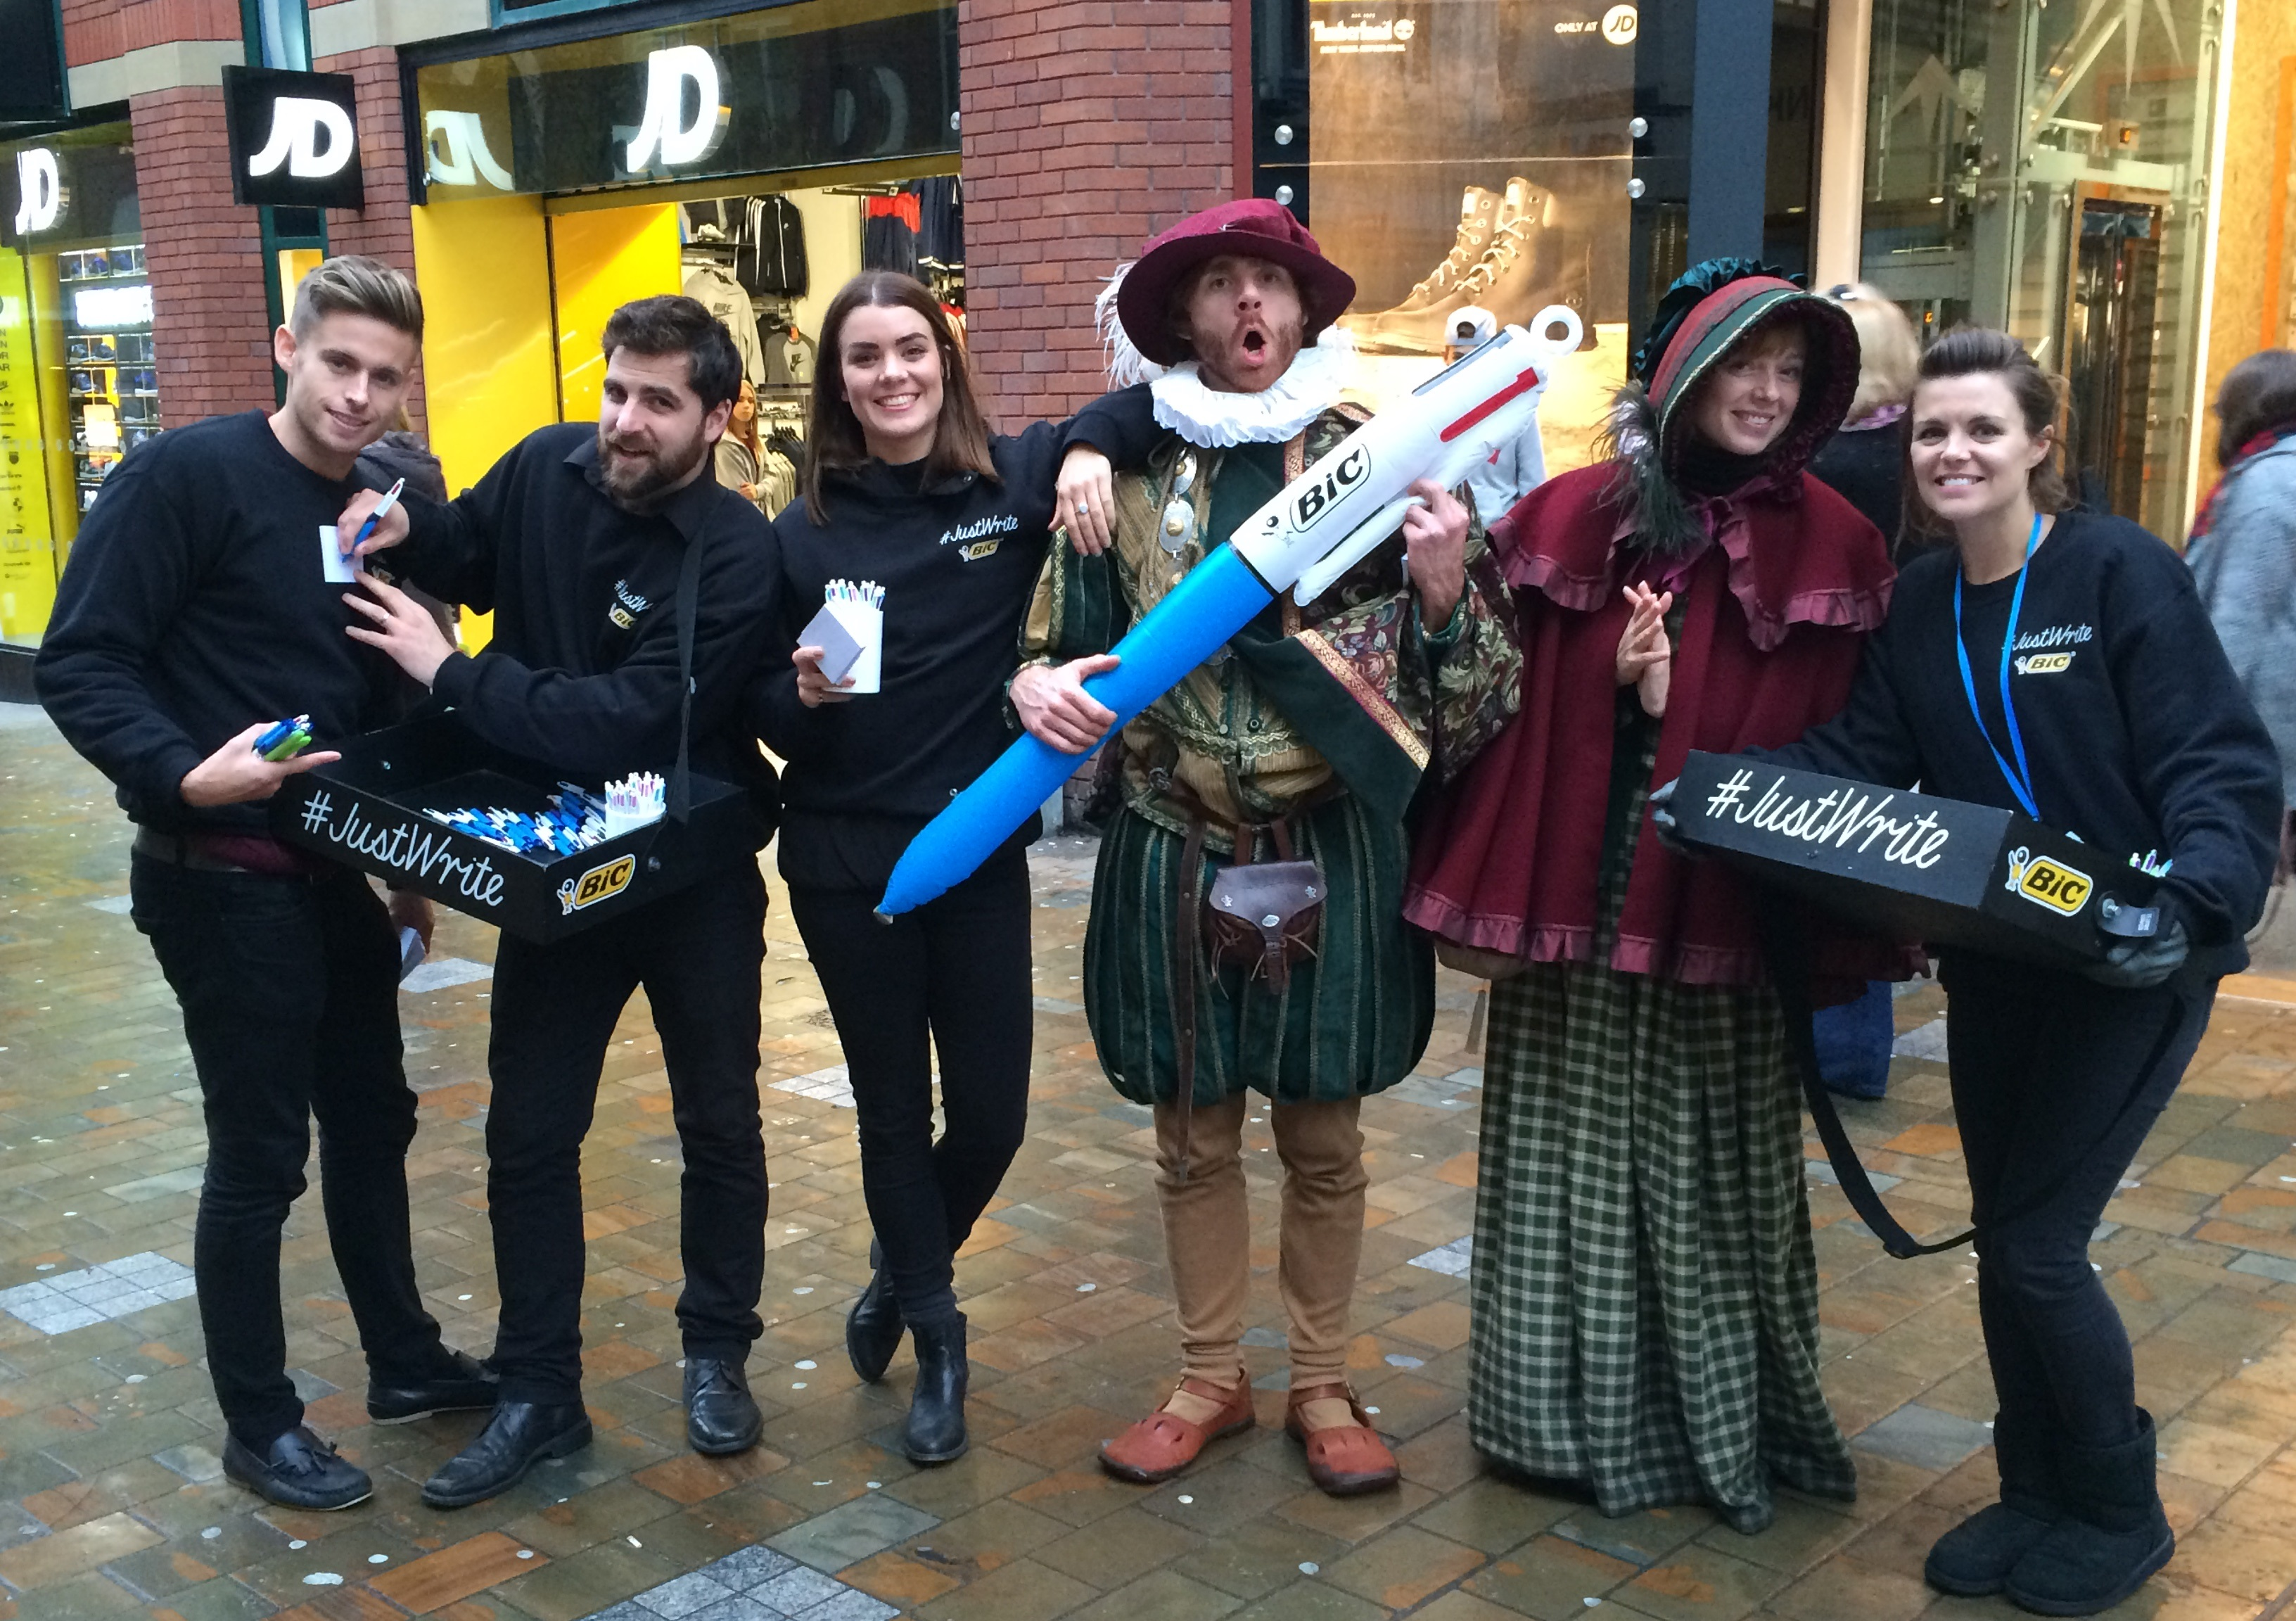 A group of promotional performers stand in a line alongside actors dressed as Emily Bronte and William Shakespeare, who holds a giant pen.